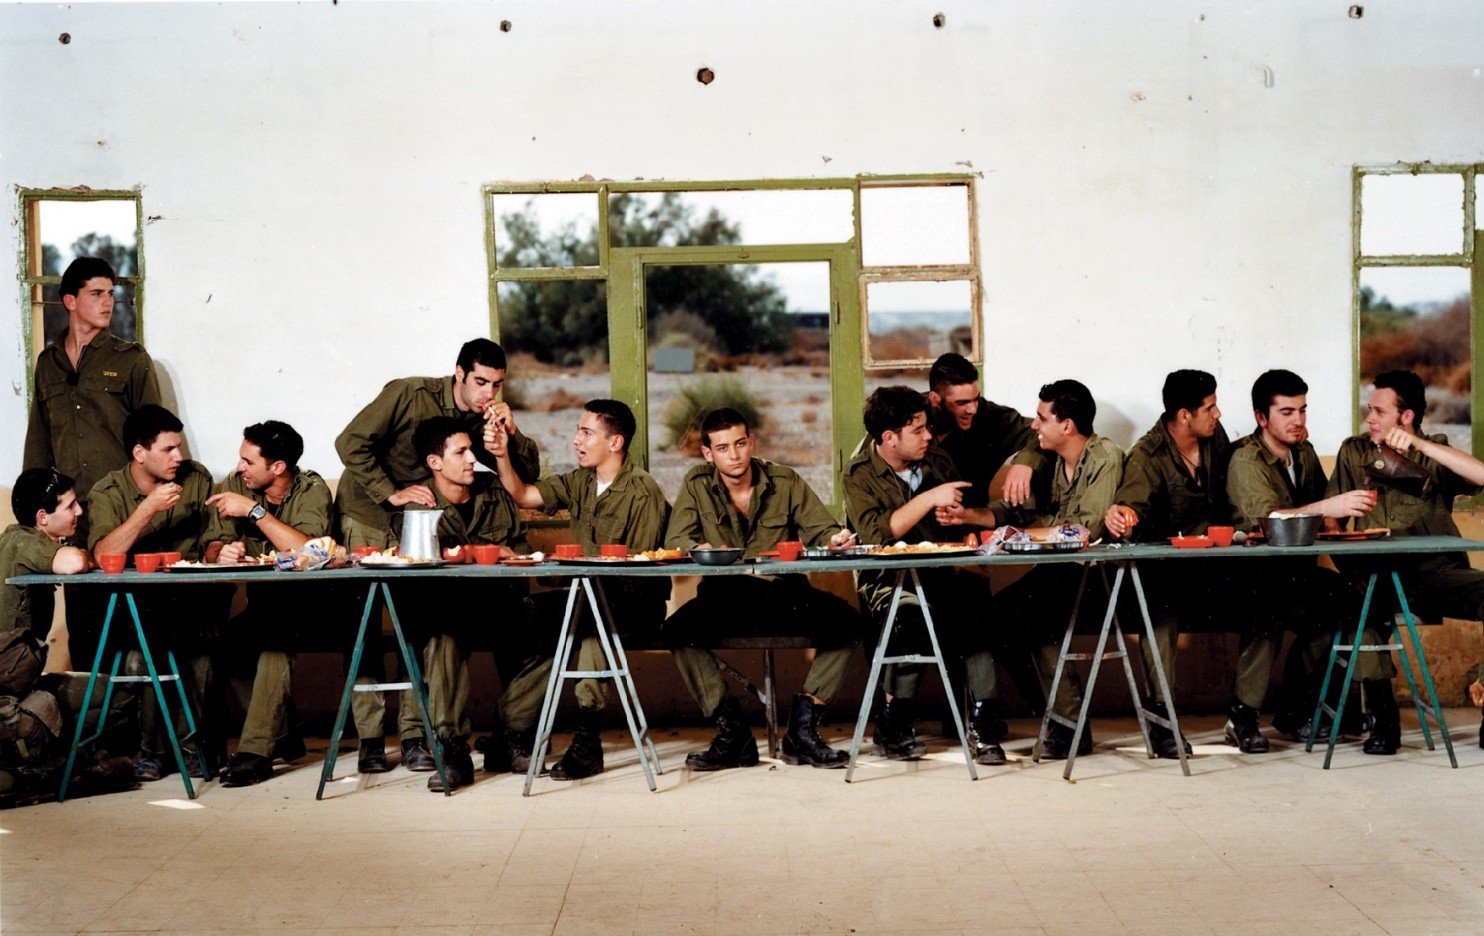 Israelis version of The Last Supper